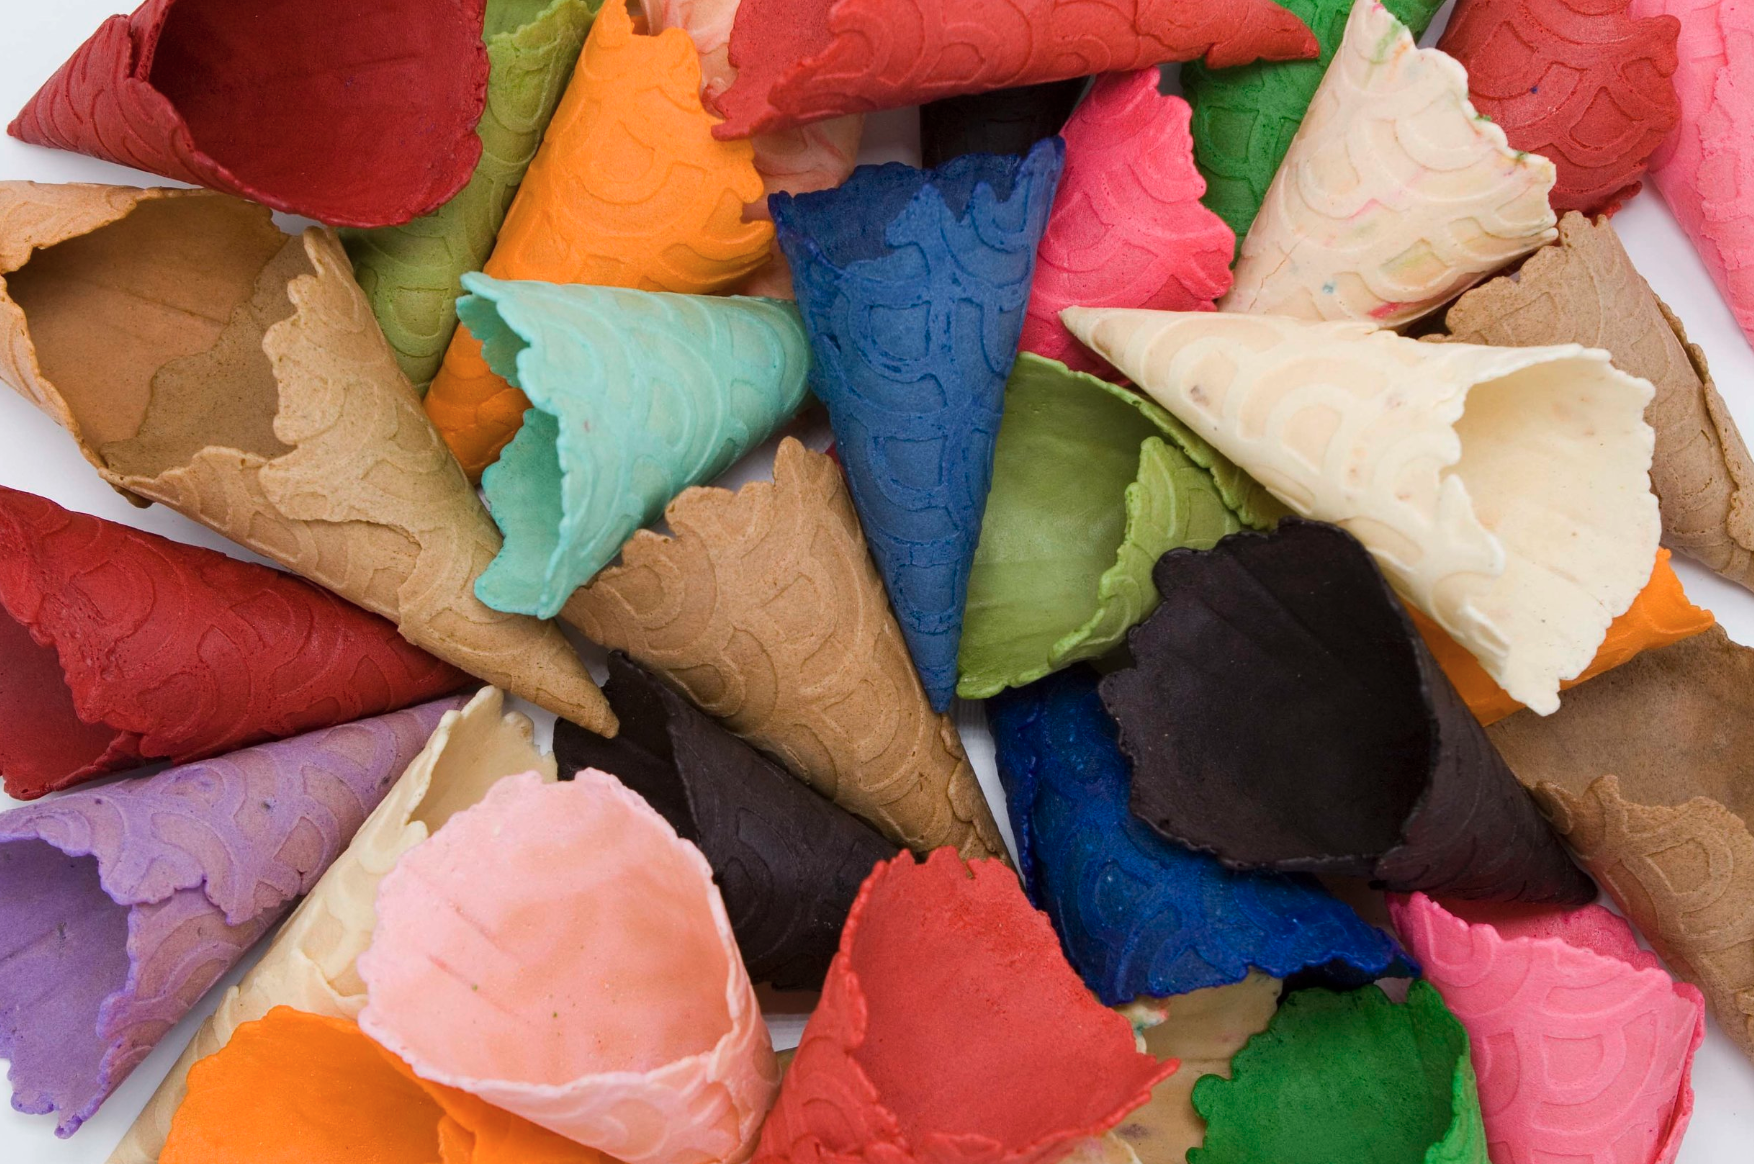 The Koney waffle cones are a virtual palate of rich colors and flavors.